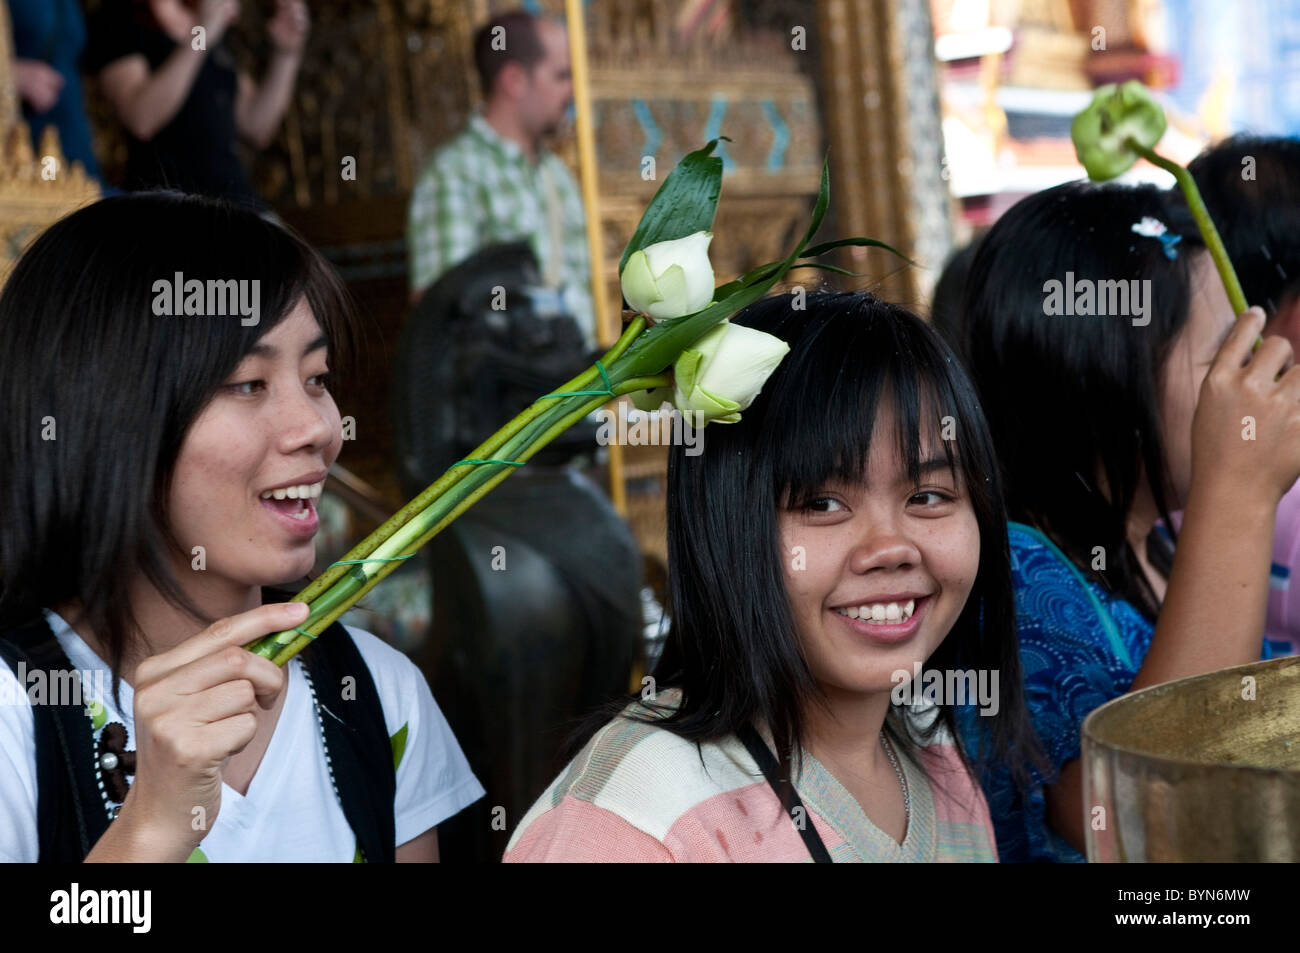 Worshipers with lotus flowers, Temple of Emerald Buddha, Wat Phra Kaeo, Grand Palace, Bangkok, Thailand - Stock Image